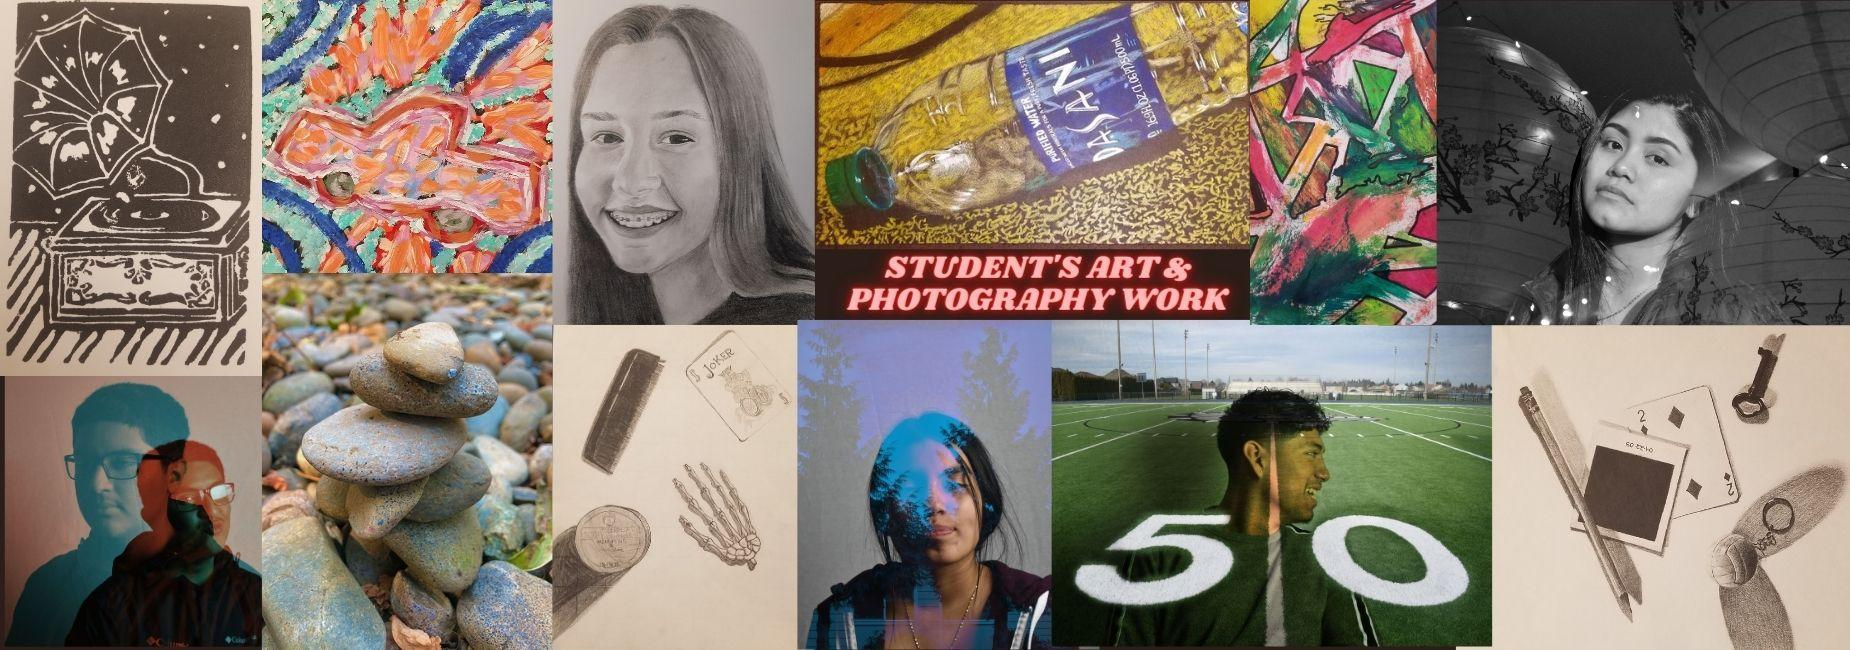 Student's Art and Photography Work